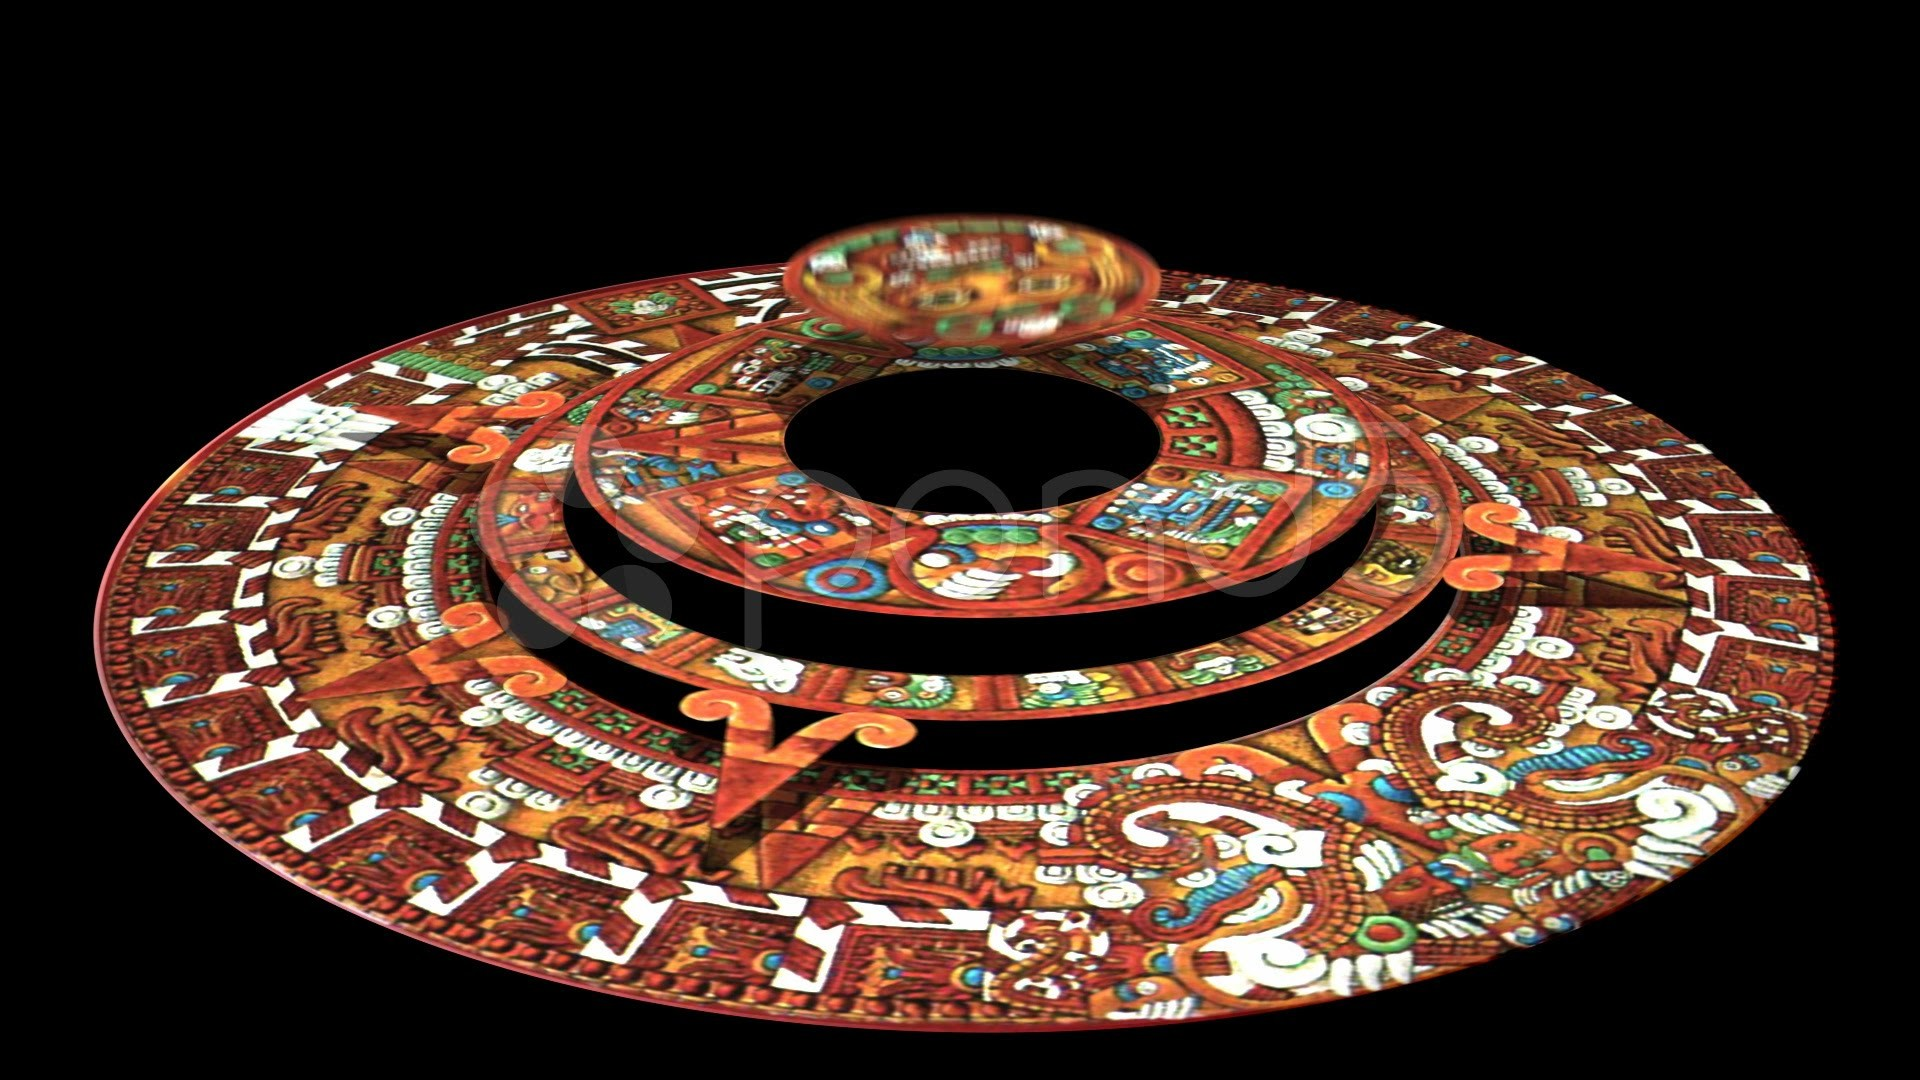 1920x1080 Mayan Doomsday Calendar (Technically Aztec Not Mayan) Rotates In 3D. Stock  Footage